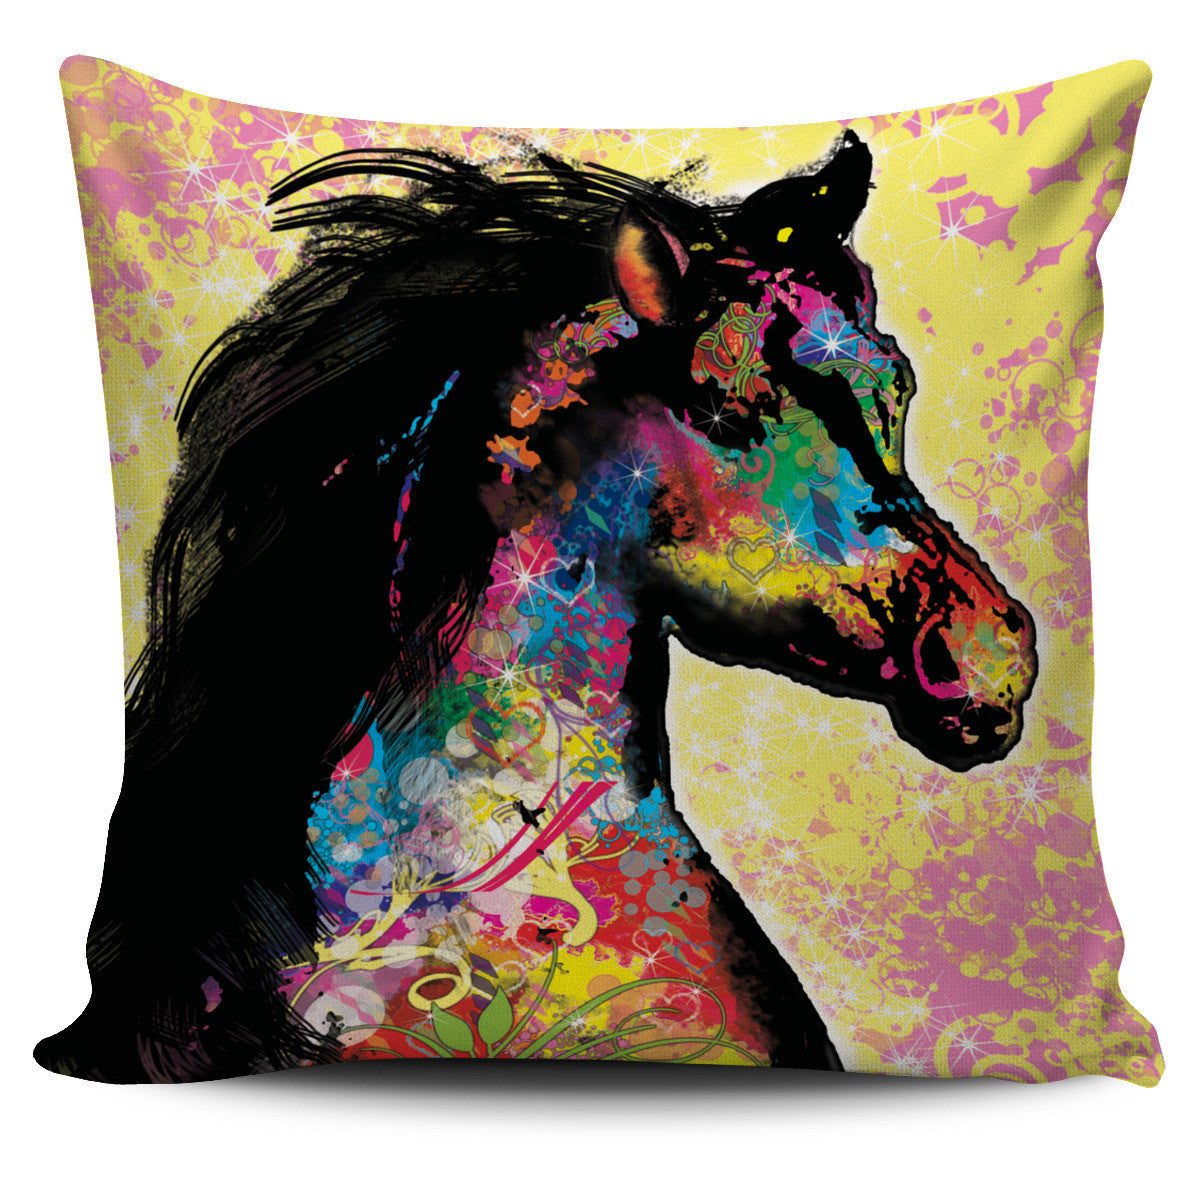 Horse Series V Pillow Covers - Hello Moa